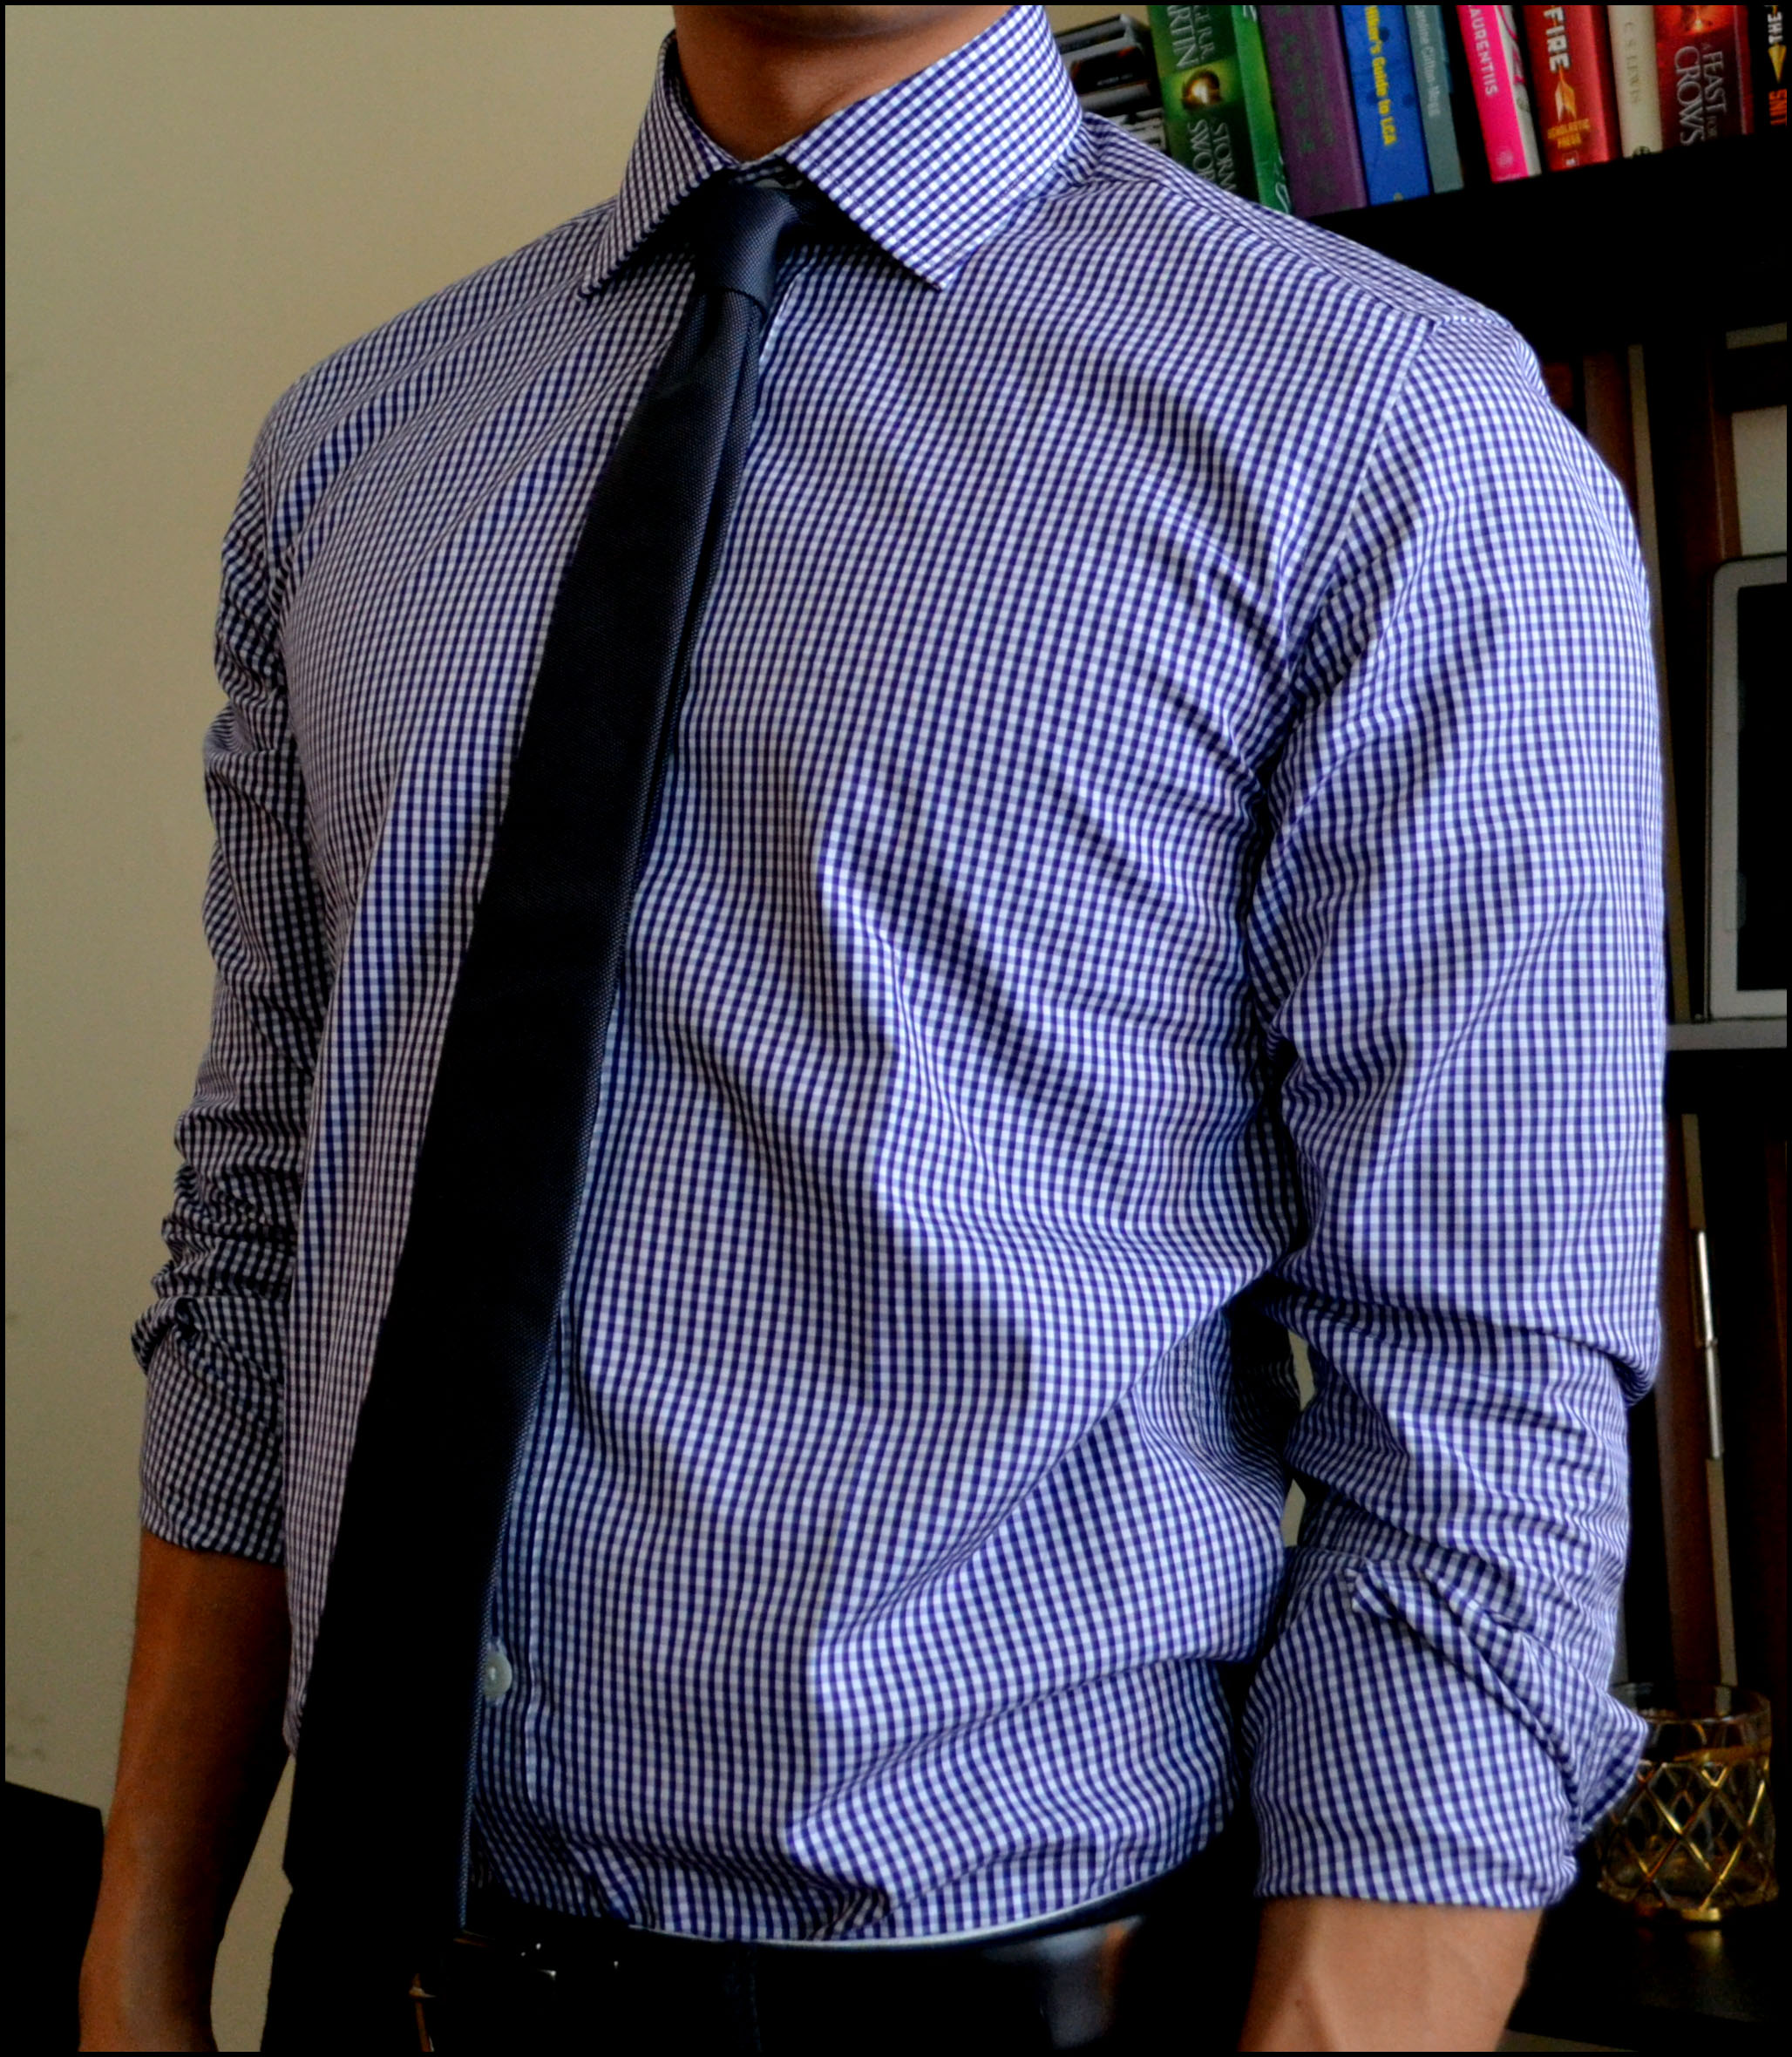 Dress shirt tie and hugh crye dress shirts simpler man for Casual shirt and tie